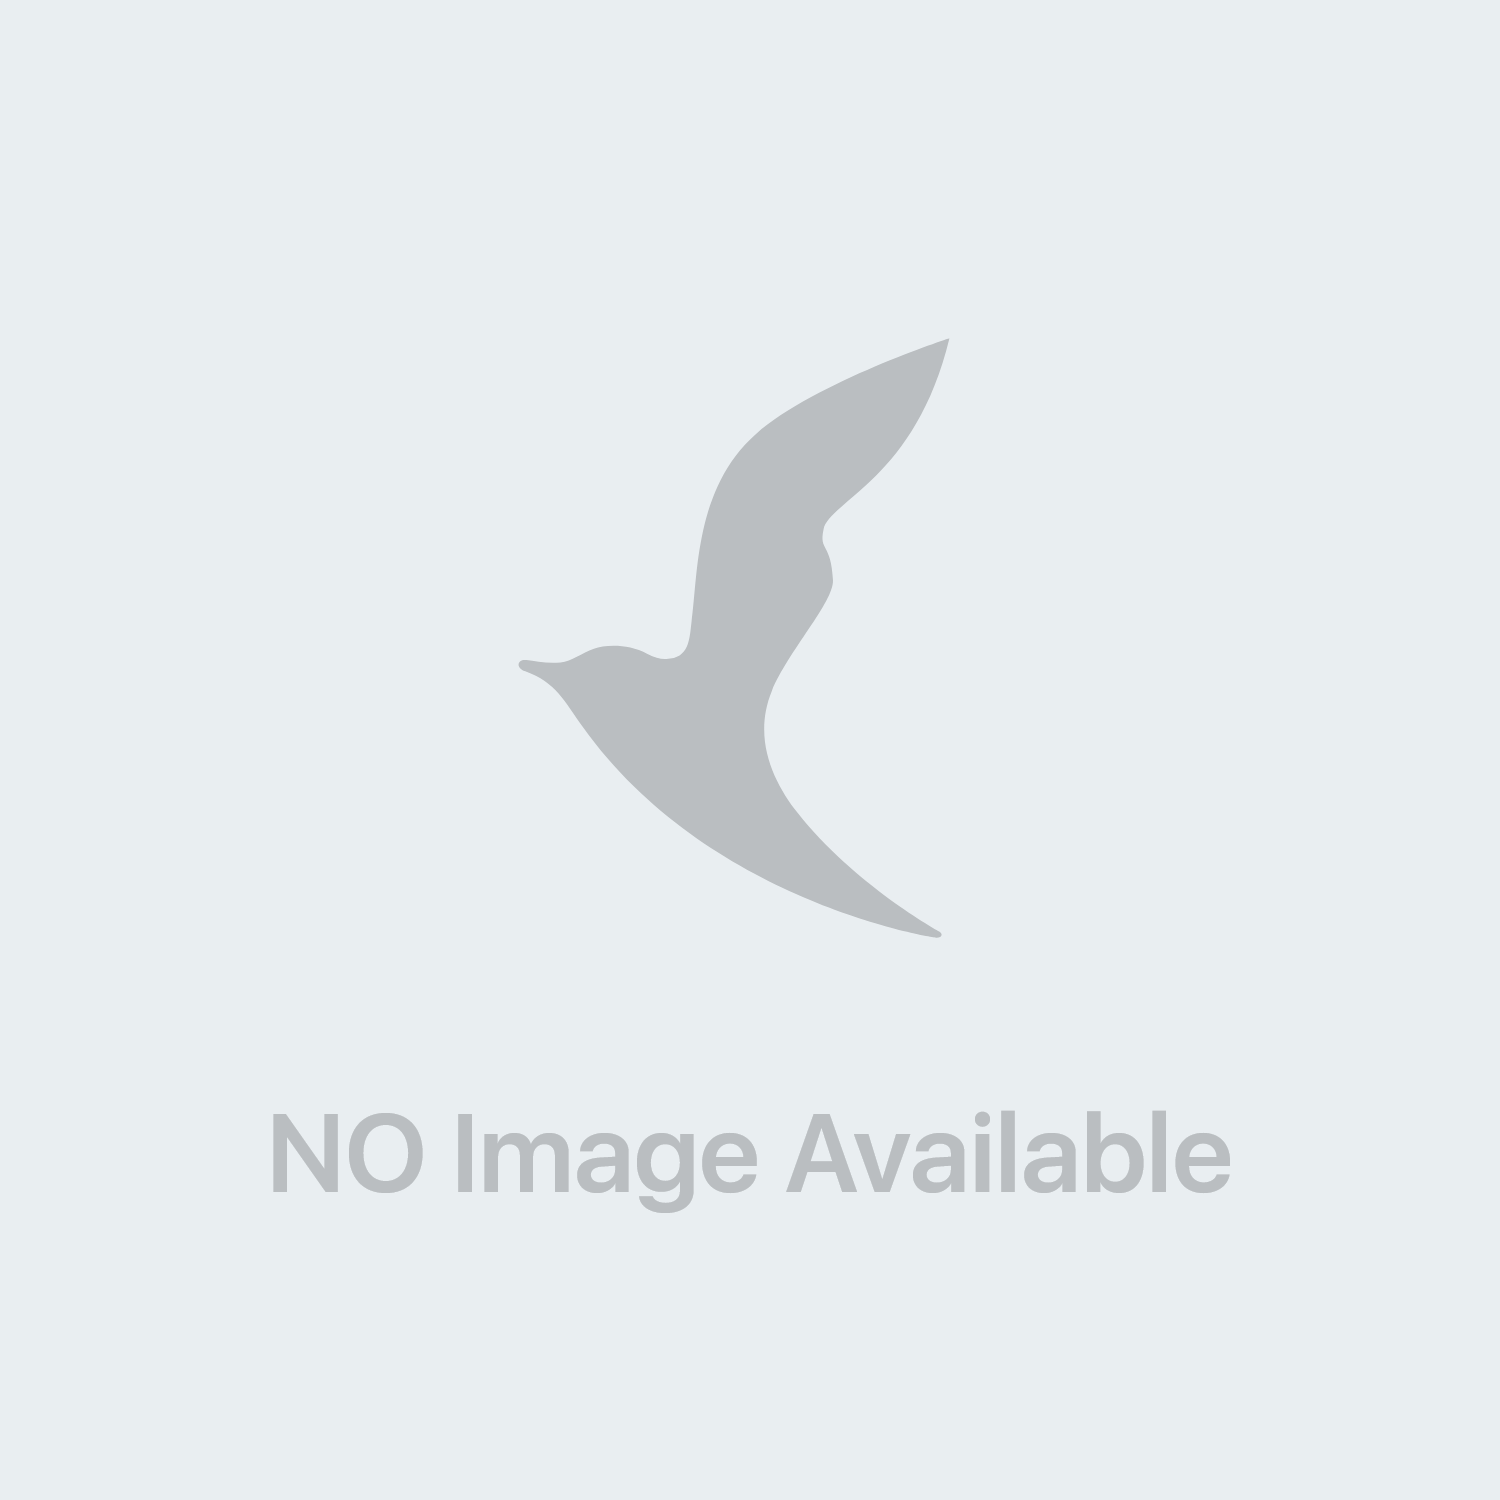 Kerodex Crema Barriera Idrorepellente Protettiva Mani 75 ml